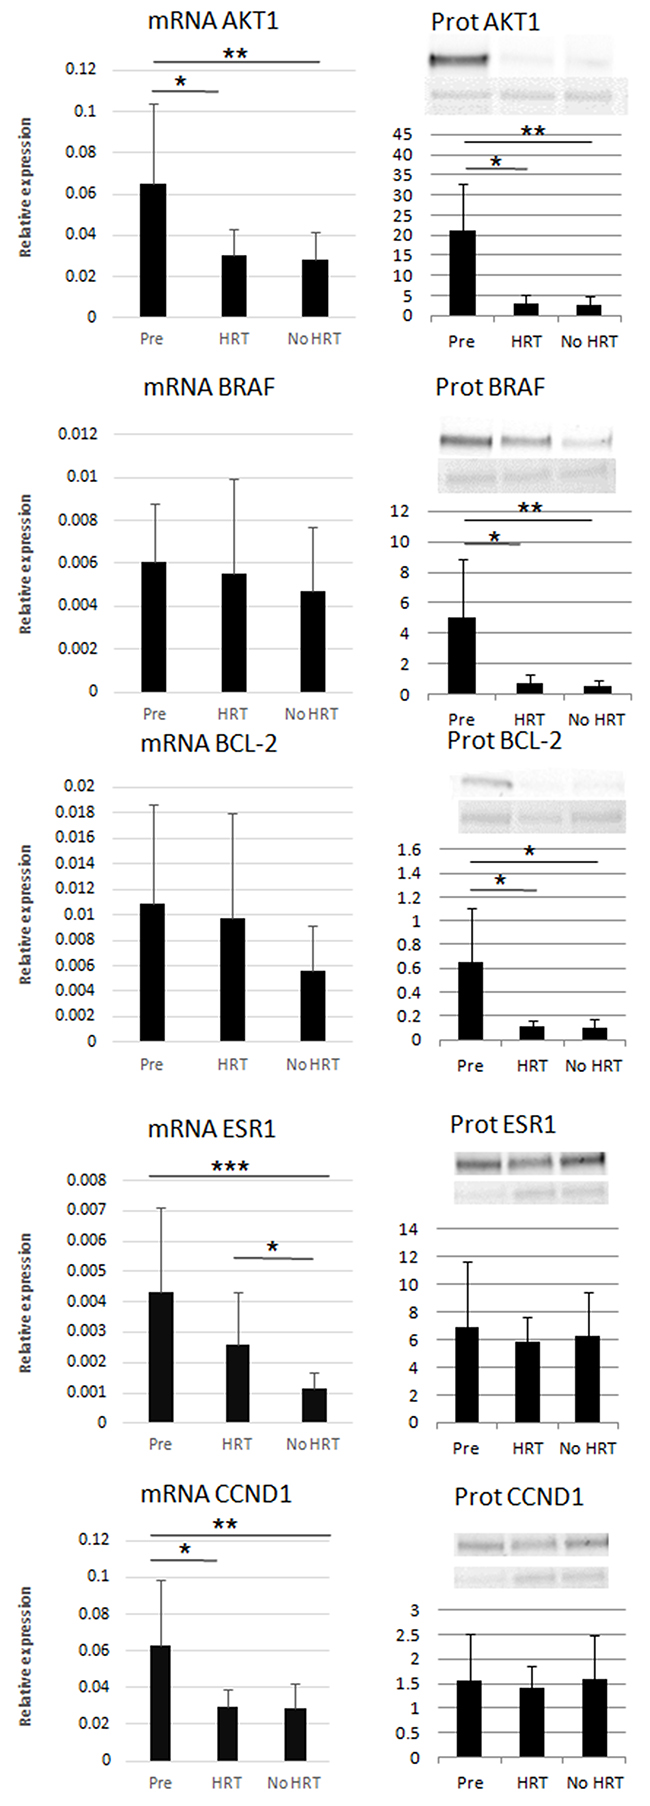 Relative mRNA expression and protein levels of the miR targets.